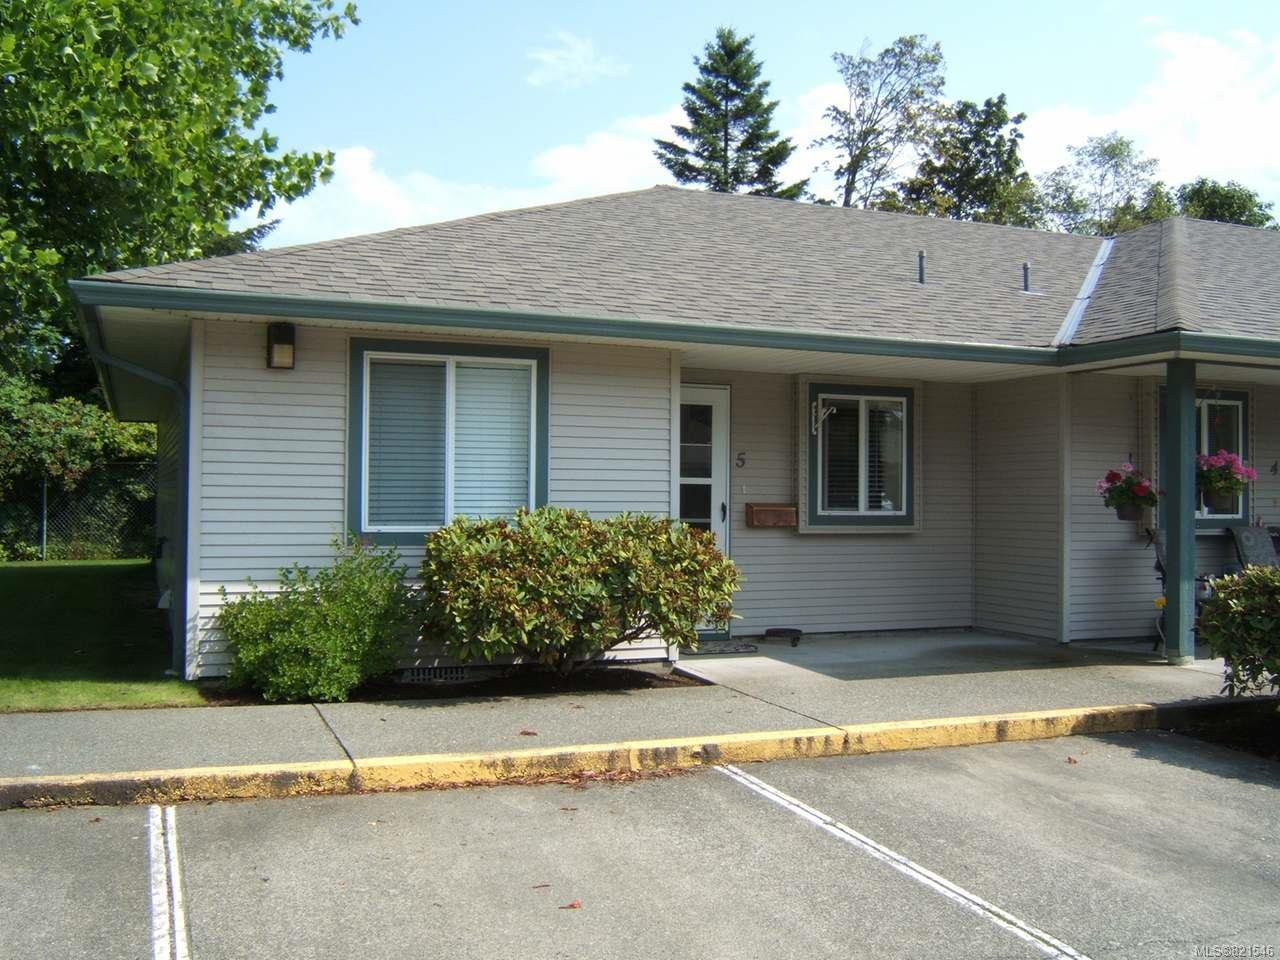 Main Photo: 5 2317 Dalton Rd in CAMPBELL RIVER: CR Willow Point Row/Townhouse for sale (Campbell River)  : MLS®# 821546